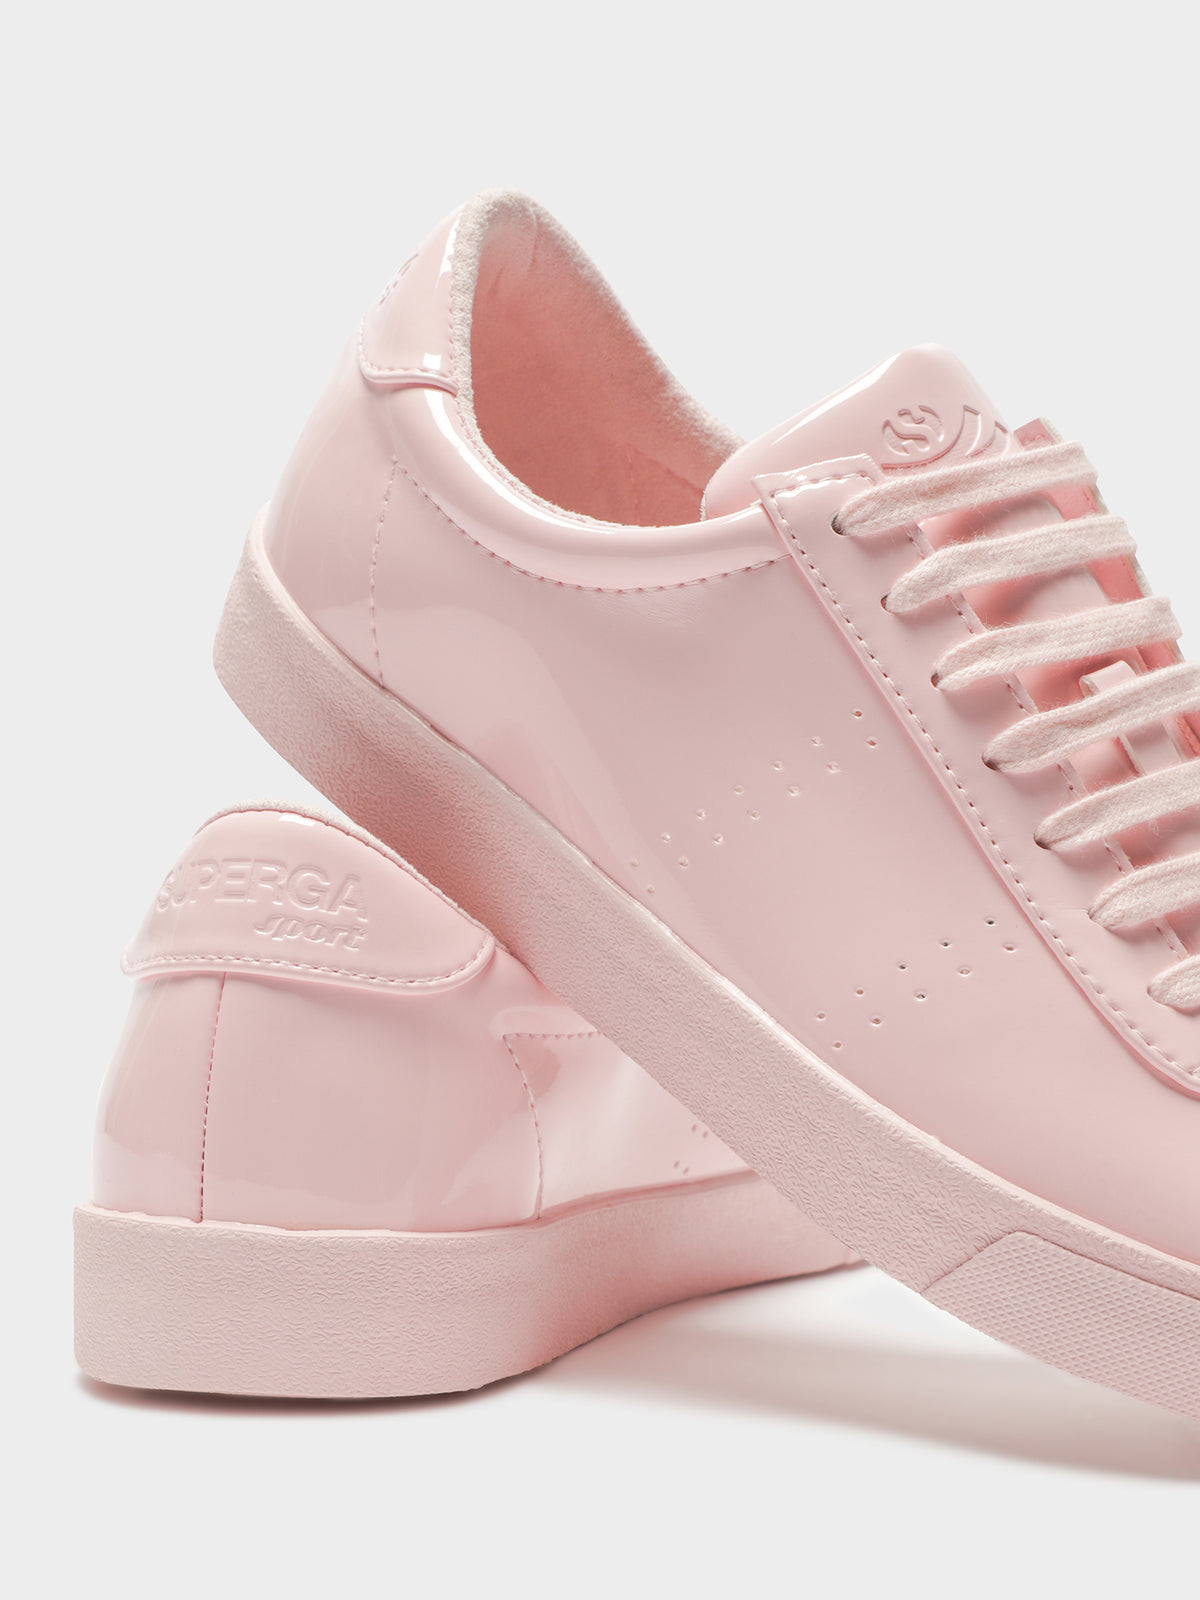 Womens 2843 Clubs Syneaw Pastel Sneakers in Soft Pink